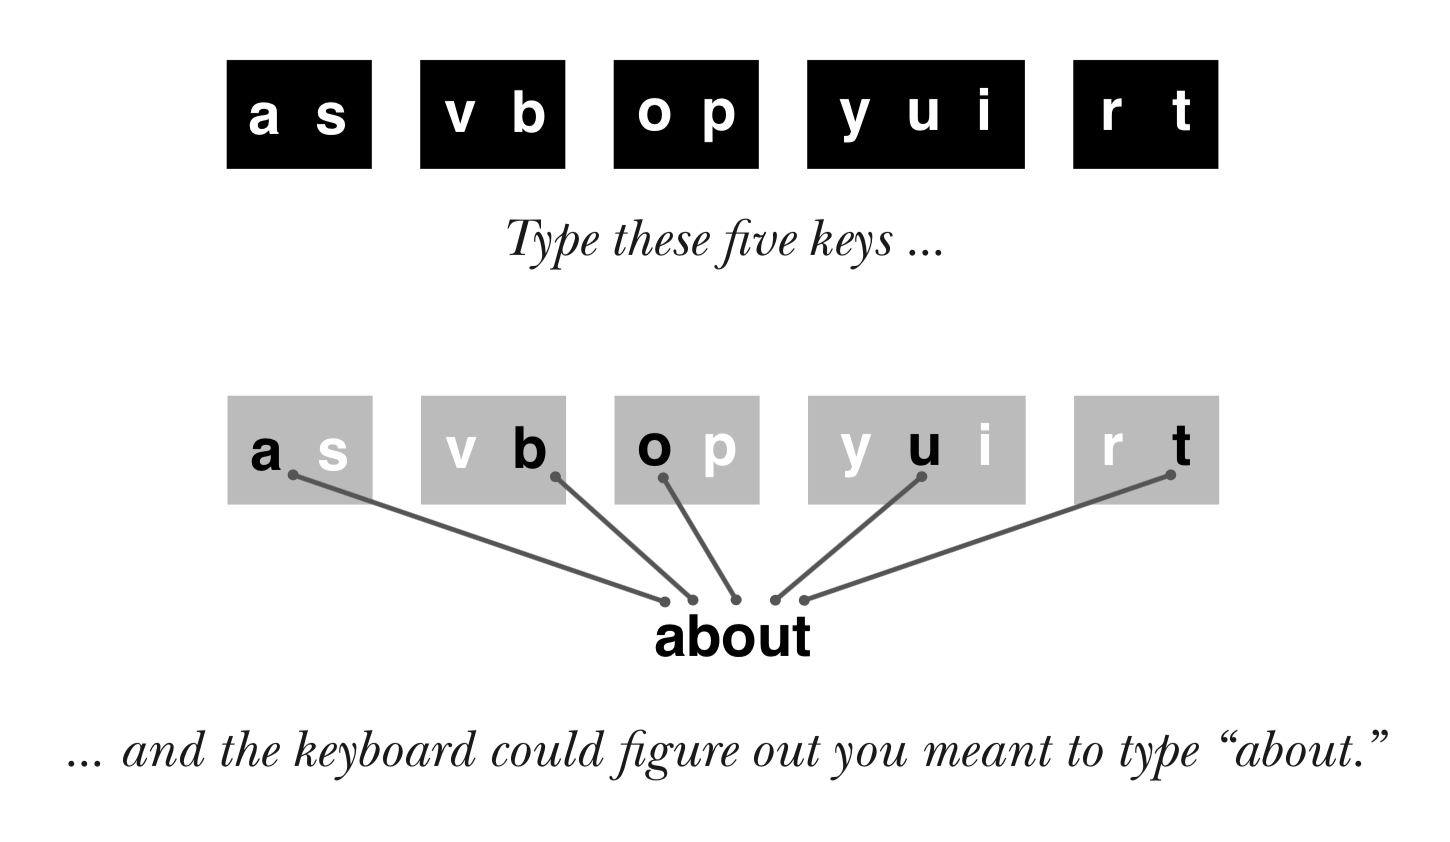 Typing paths for the word: about